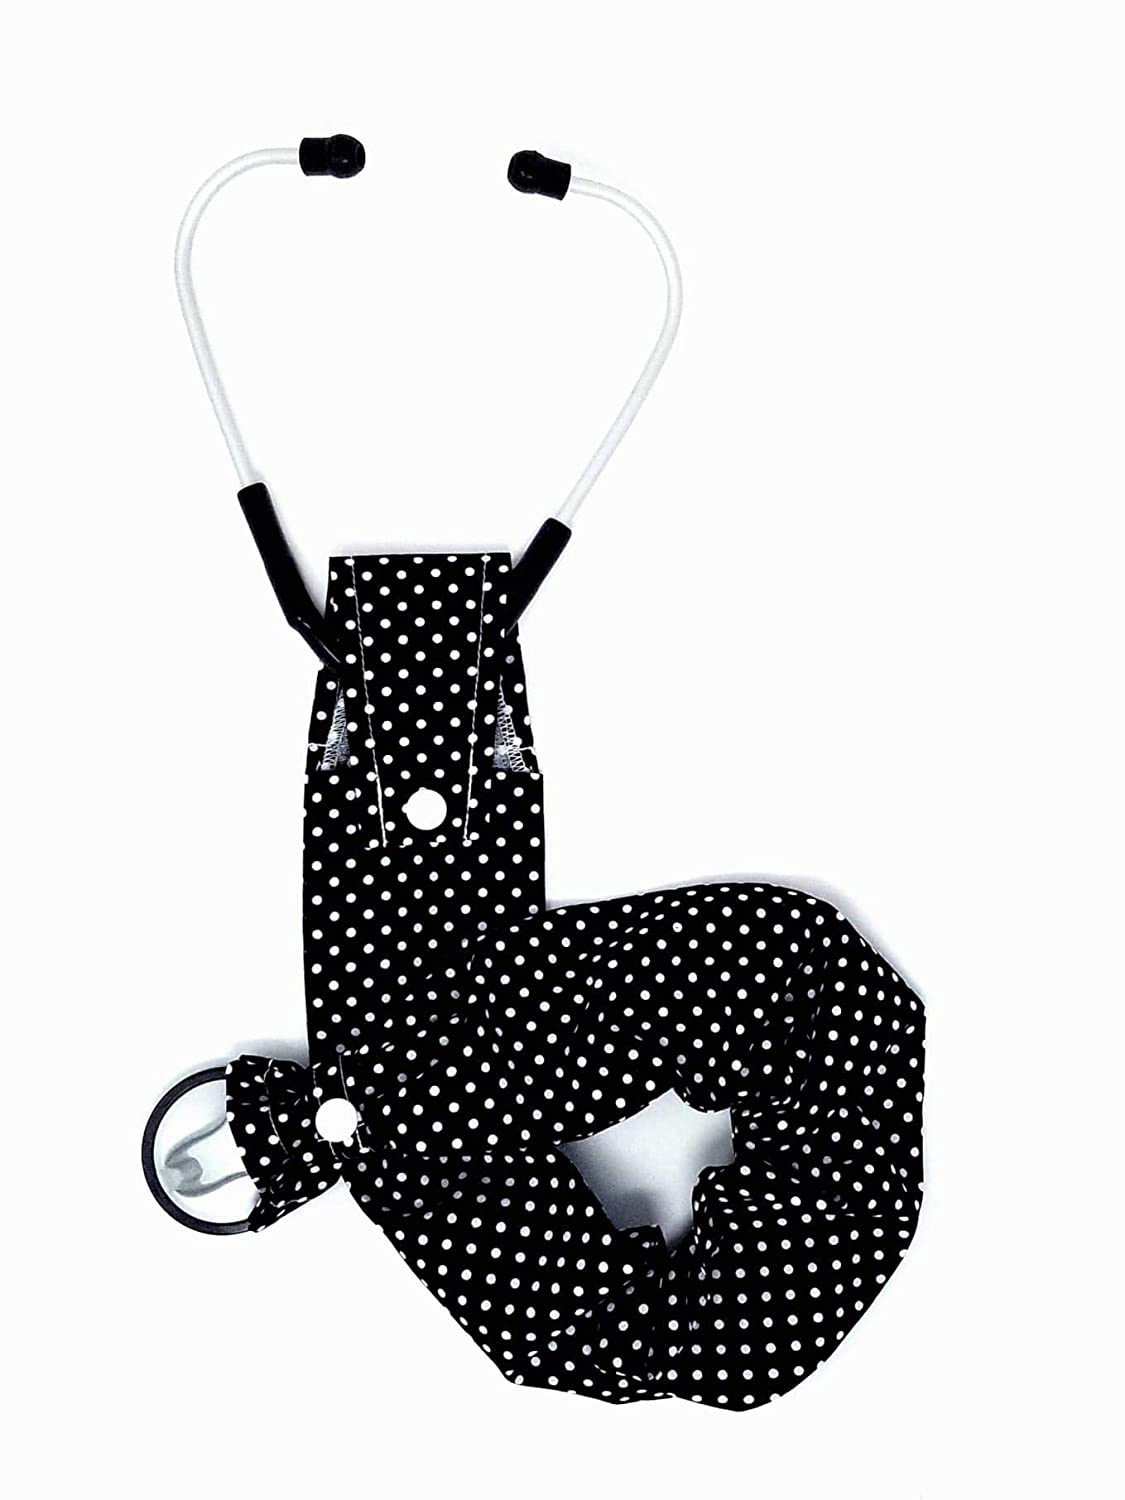 Stethoscope Cover Snap Bottom Black with Polka Dot Nippon regular agency Max 50% OFF Small White